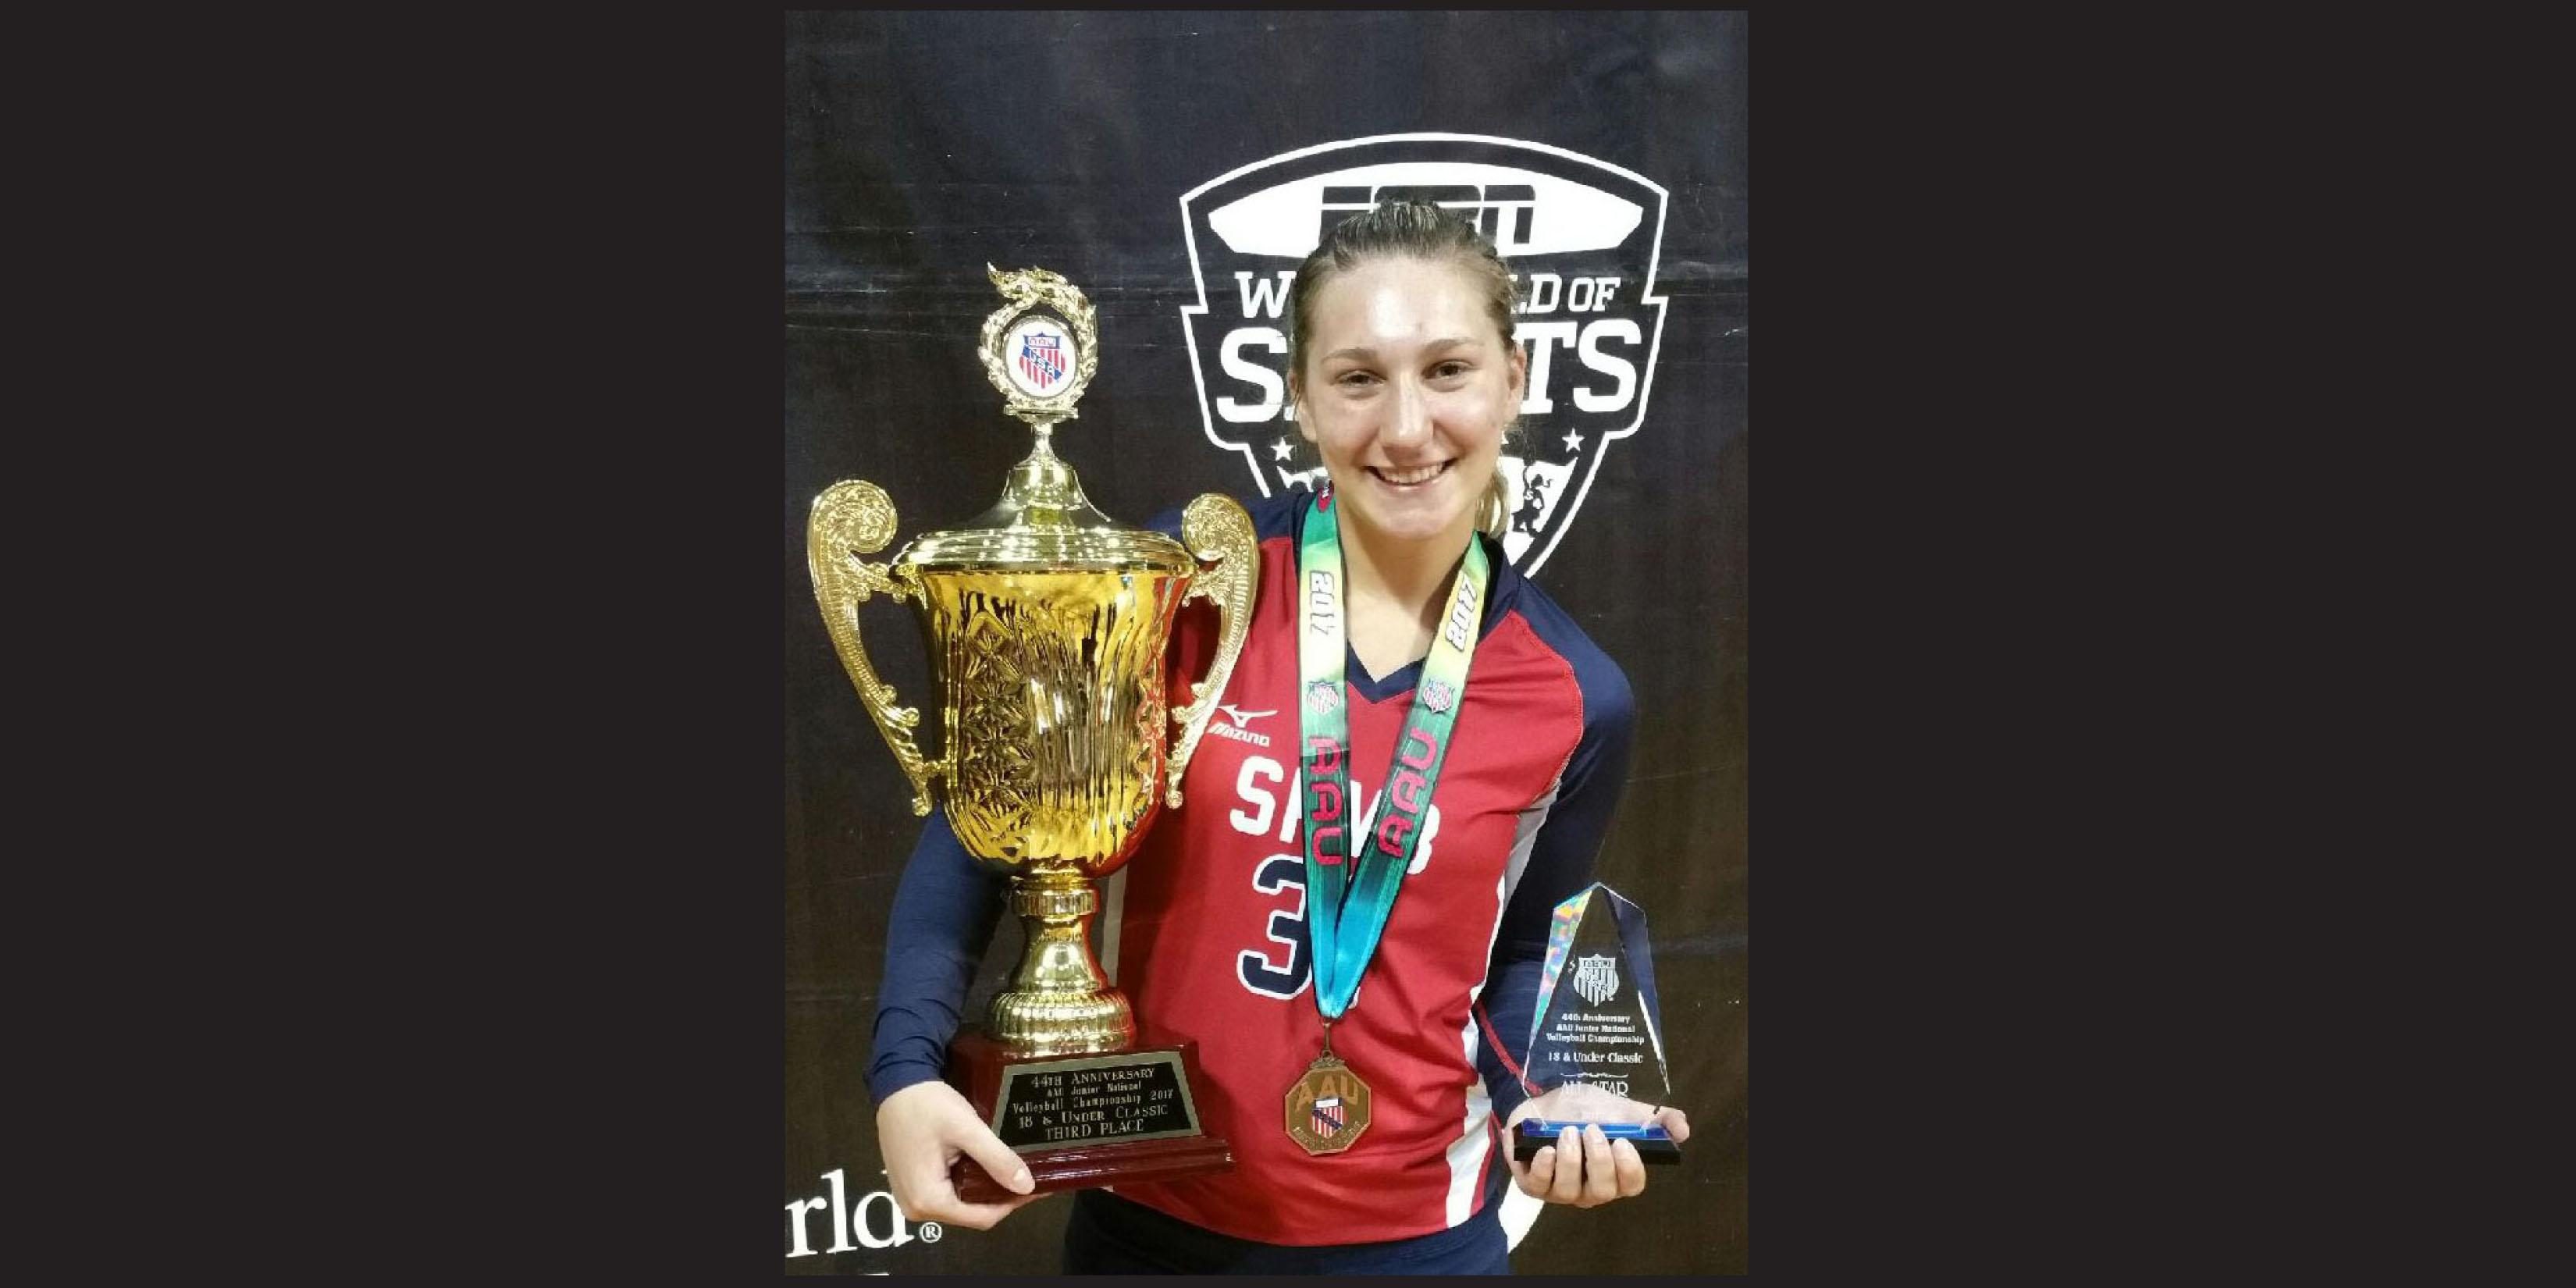 Addison Trail alumna receives All-American recognition during 2017 AAU Girls Junior National Volleyball Championships